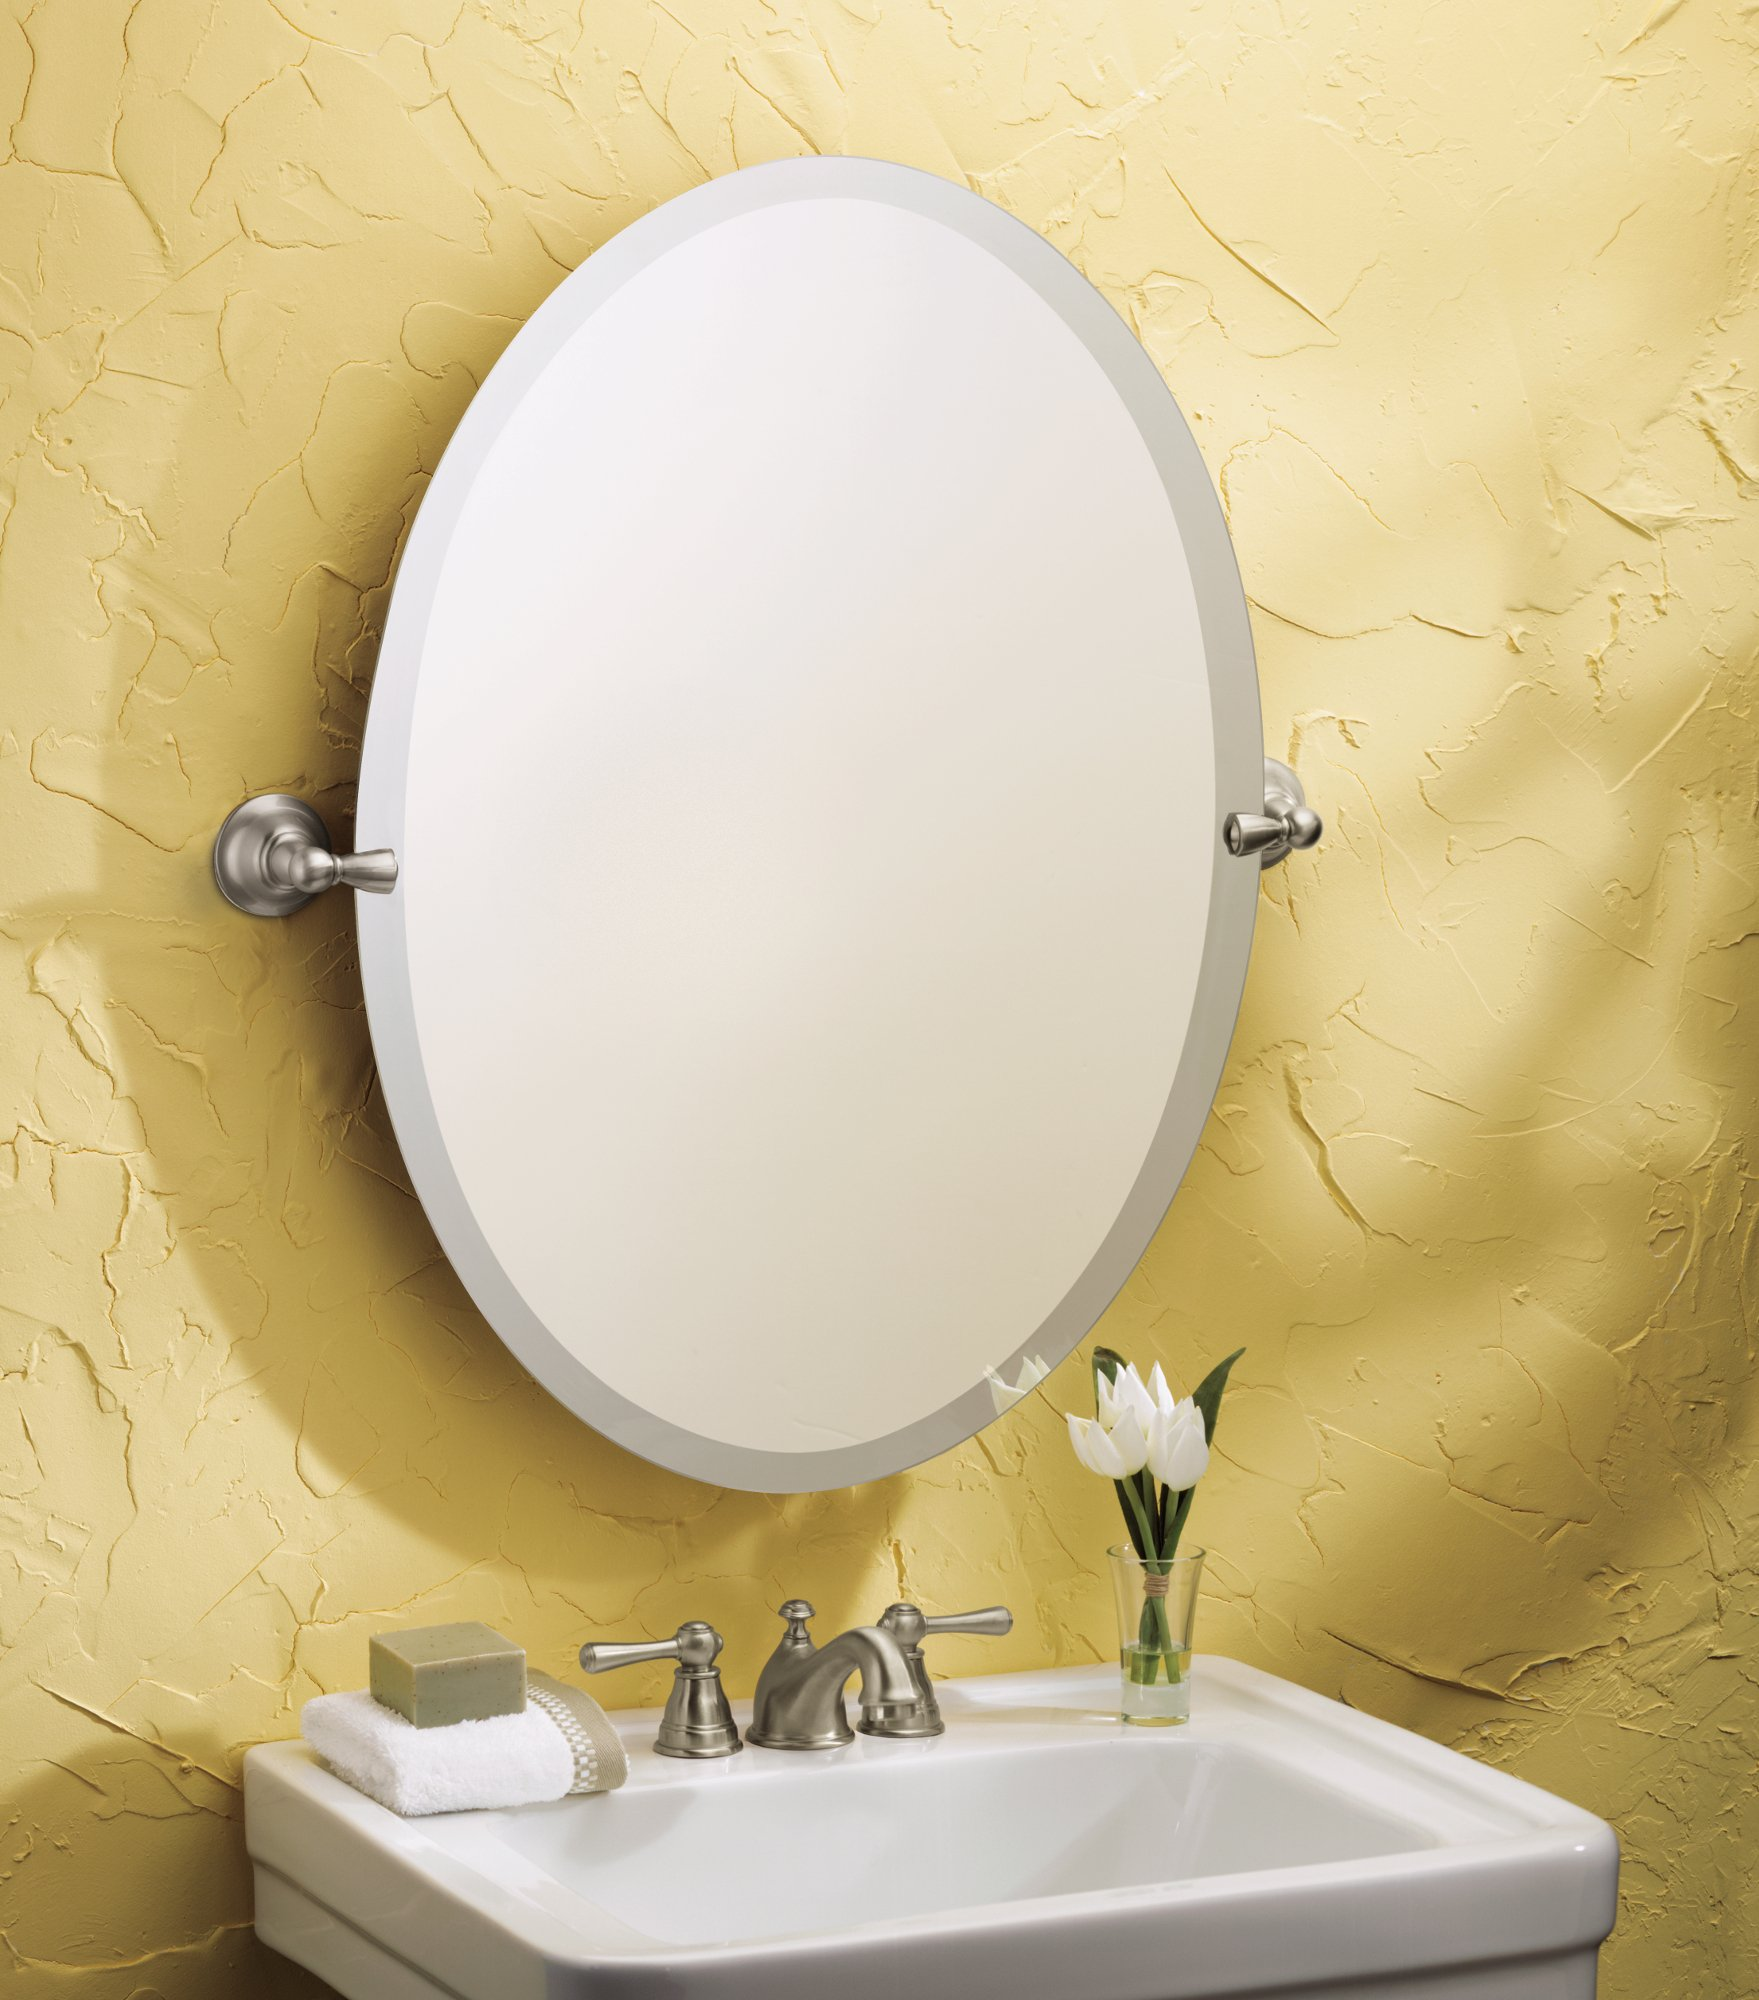 Moen dn6892bn sage bathroom oval tilting mirror brushed - Bathroom mirror mounting hardware ...